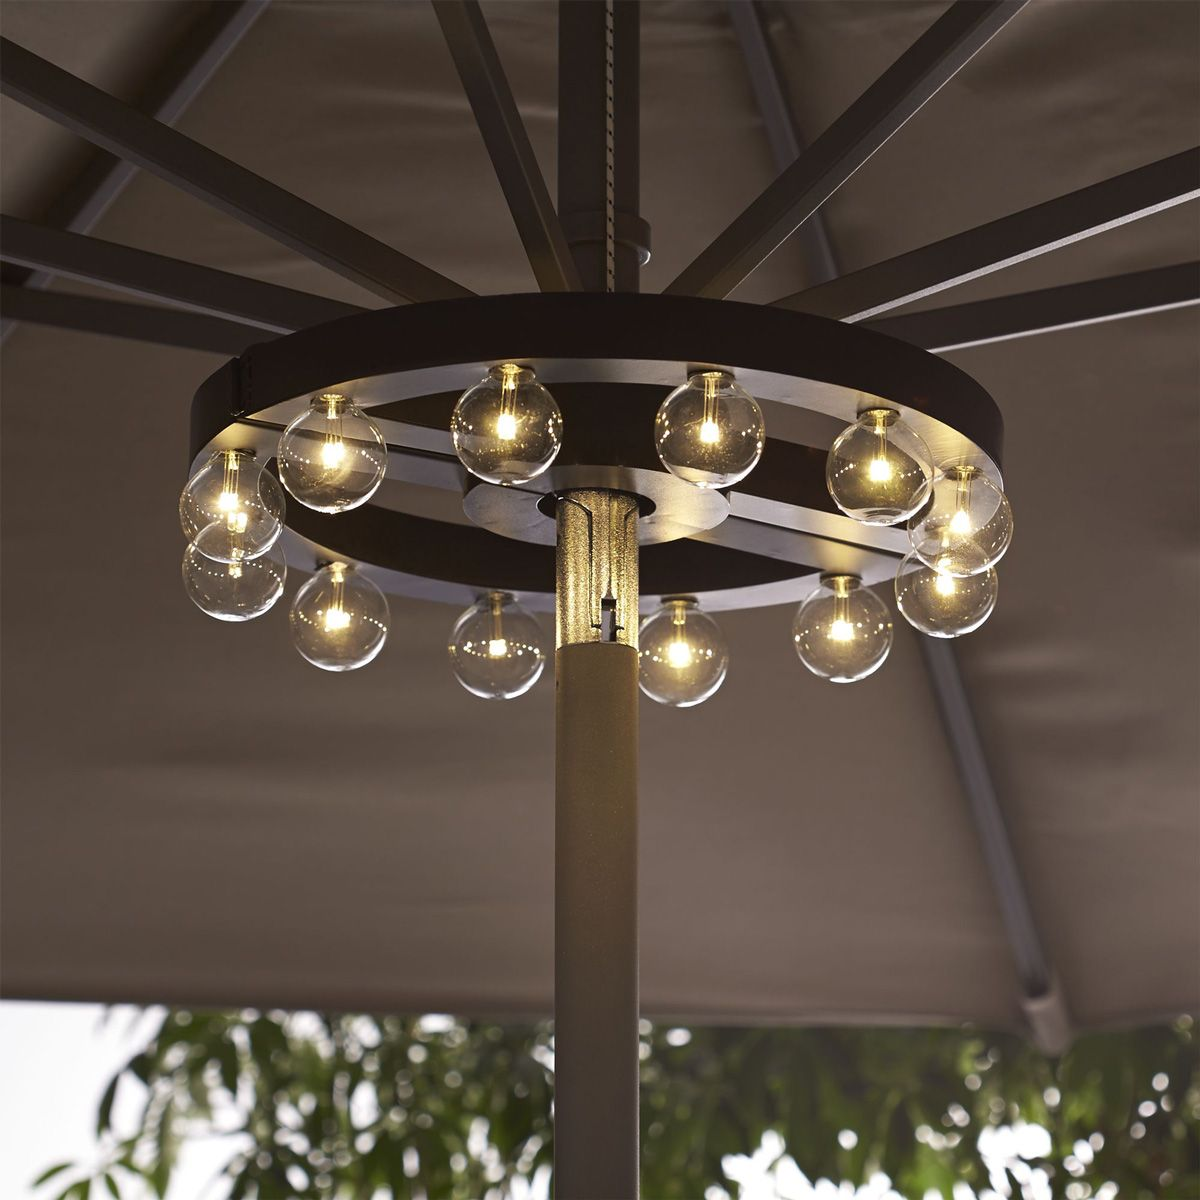 Exceptional Patio Umbrella Marquee Lights